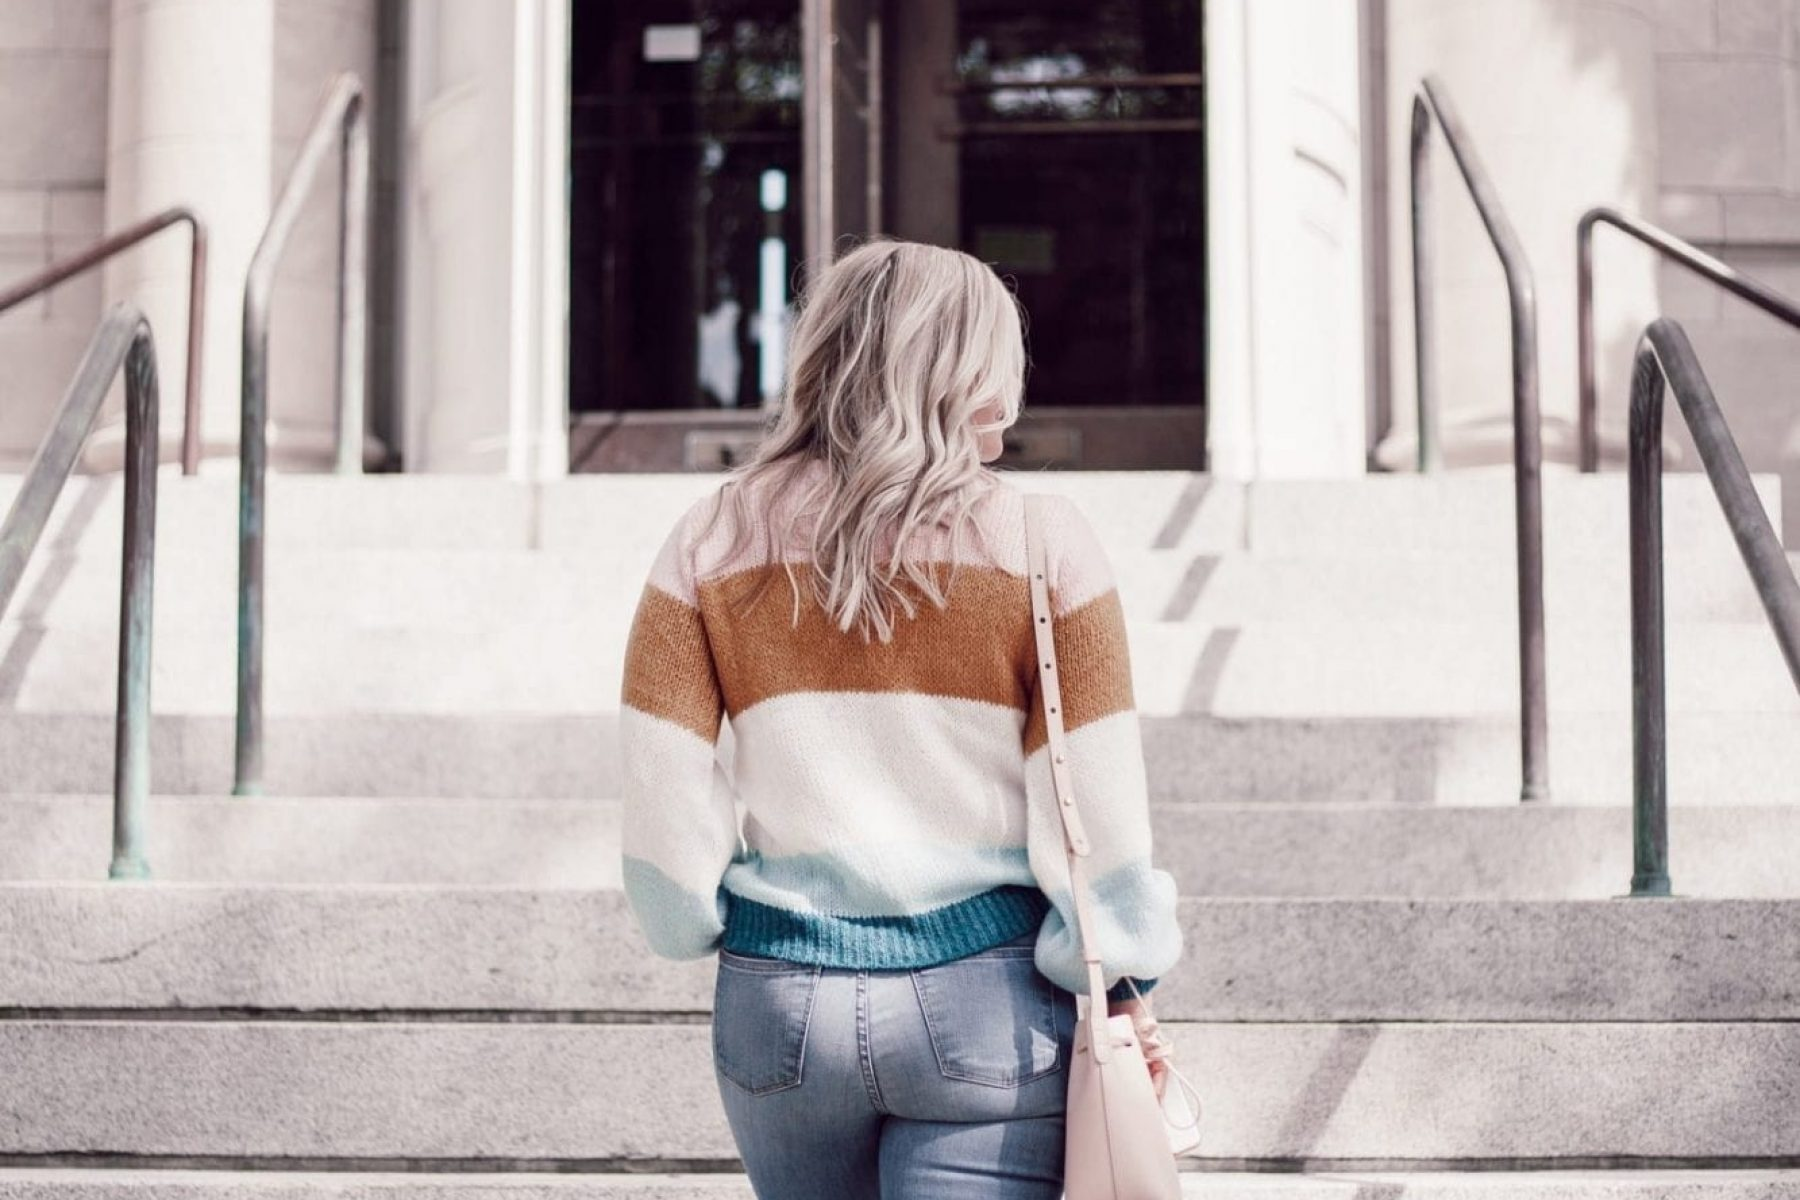 Afternoon-Espresso-Anniversary-Sale-Nordstrom-Topshop-Colorblock-Sweater-Madewell-Denim-Blogger-80-of-10